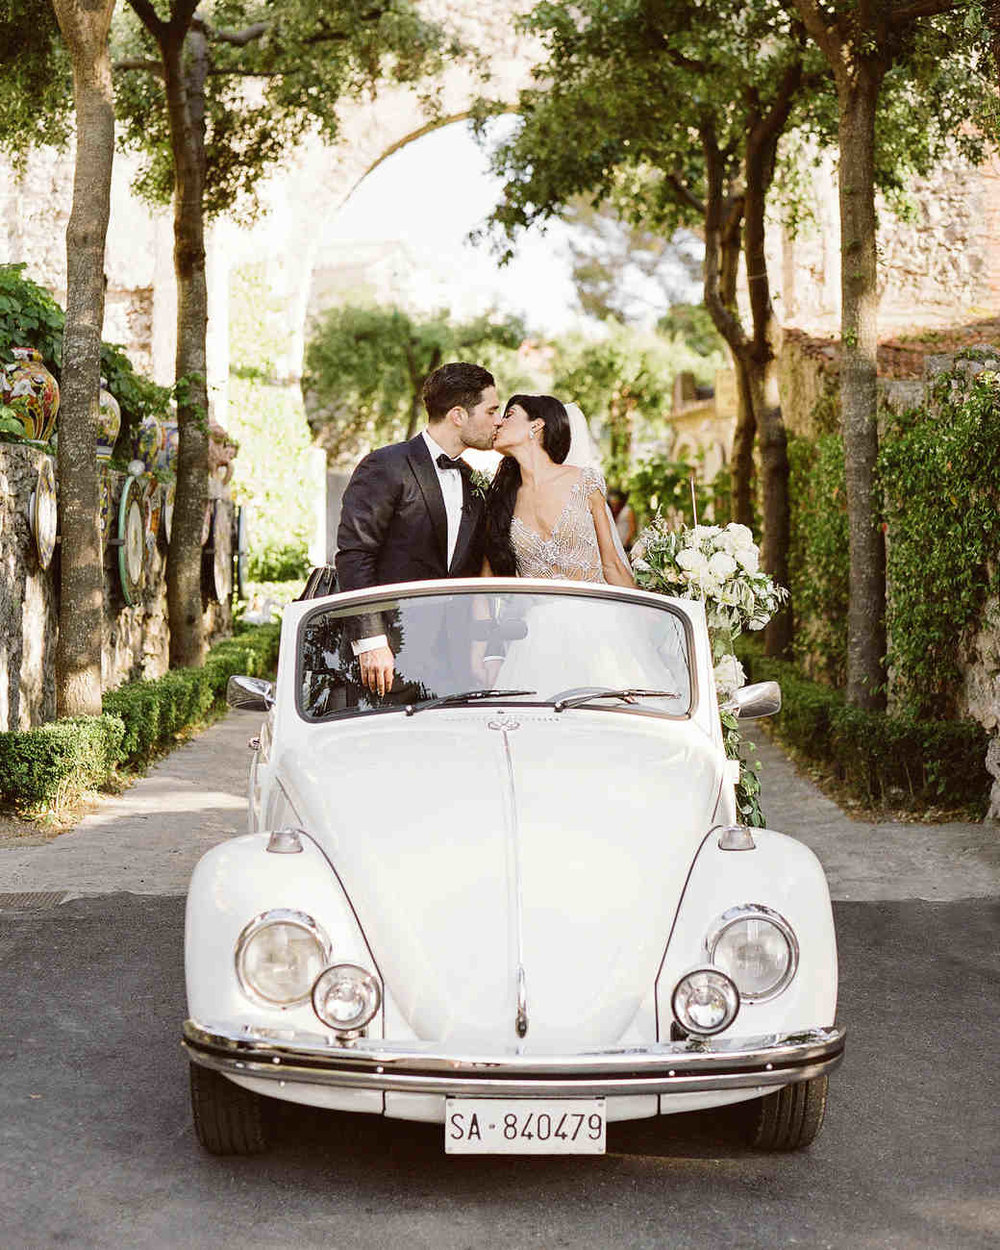 lisa-greg-italy-wedding-car-kiss-103312967_vert.jpg